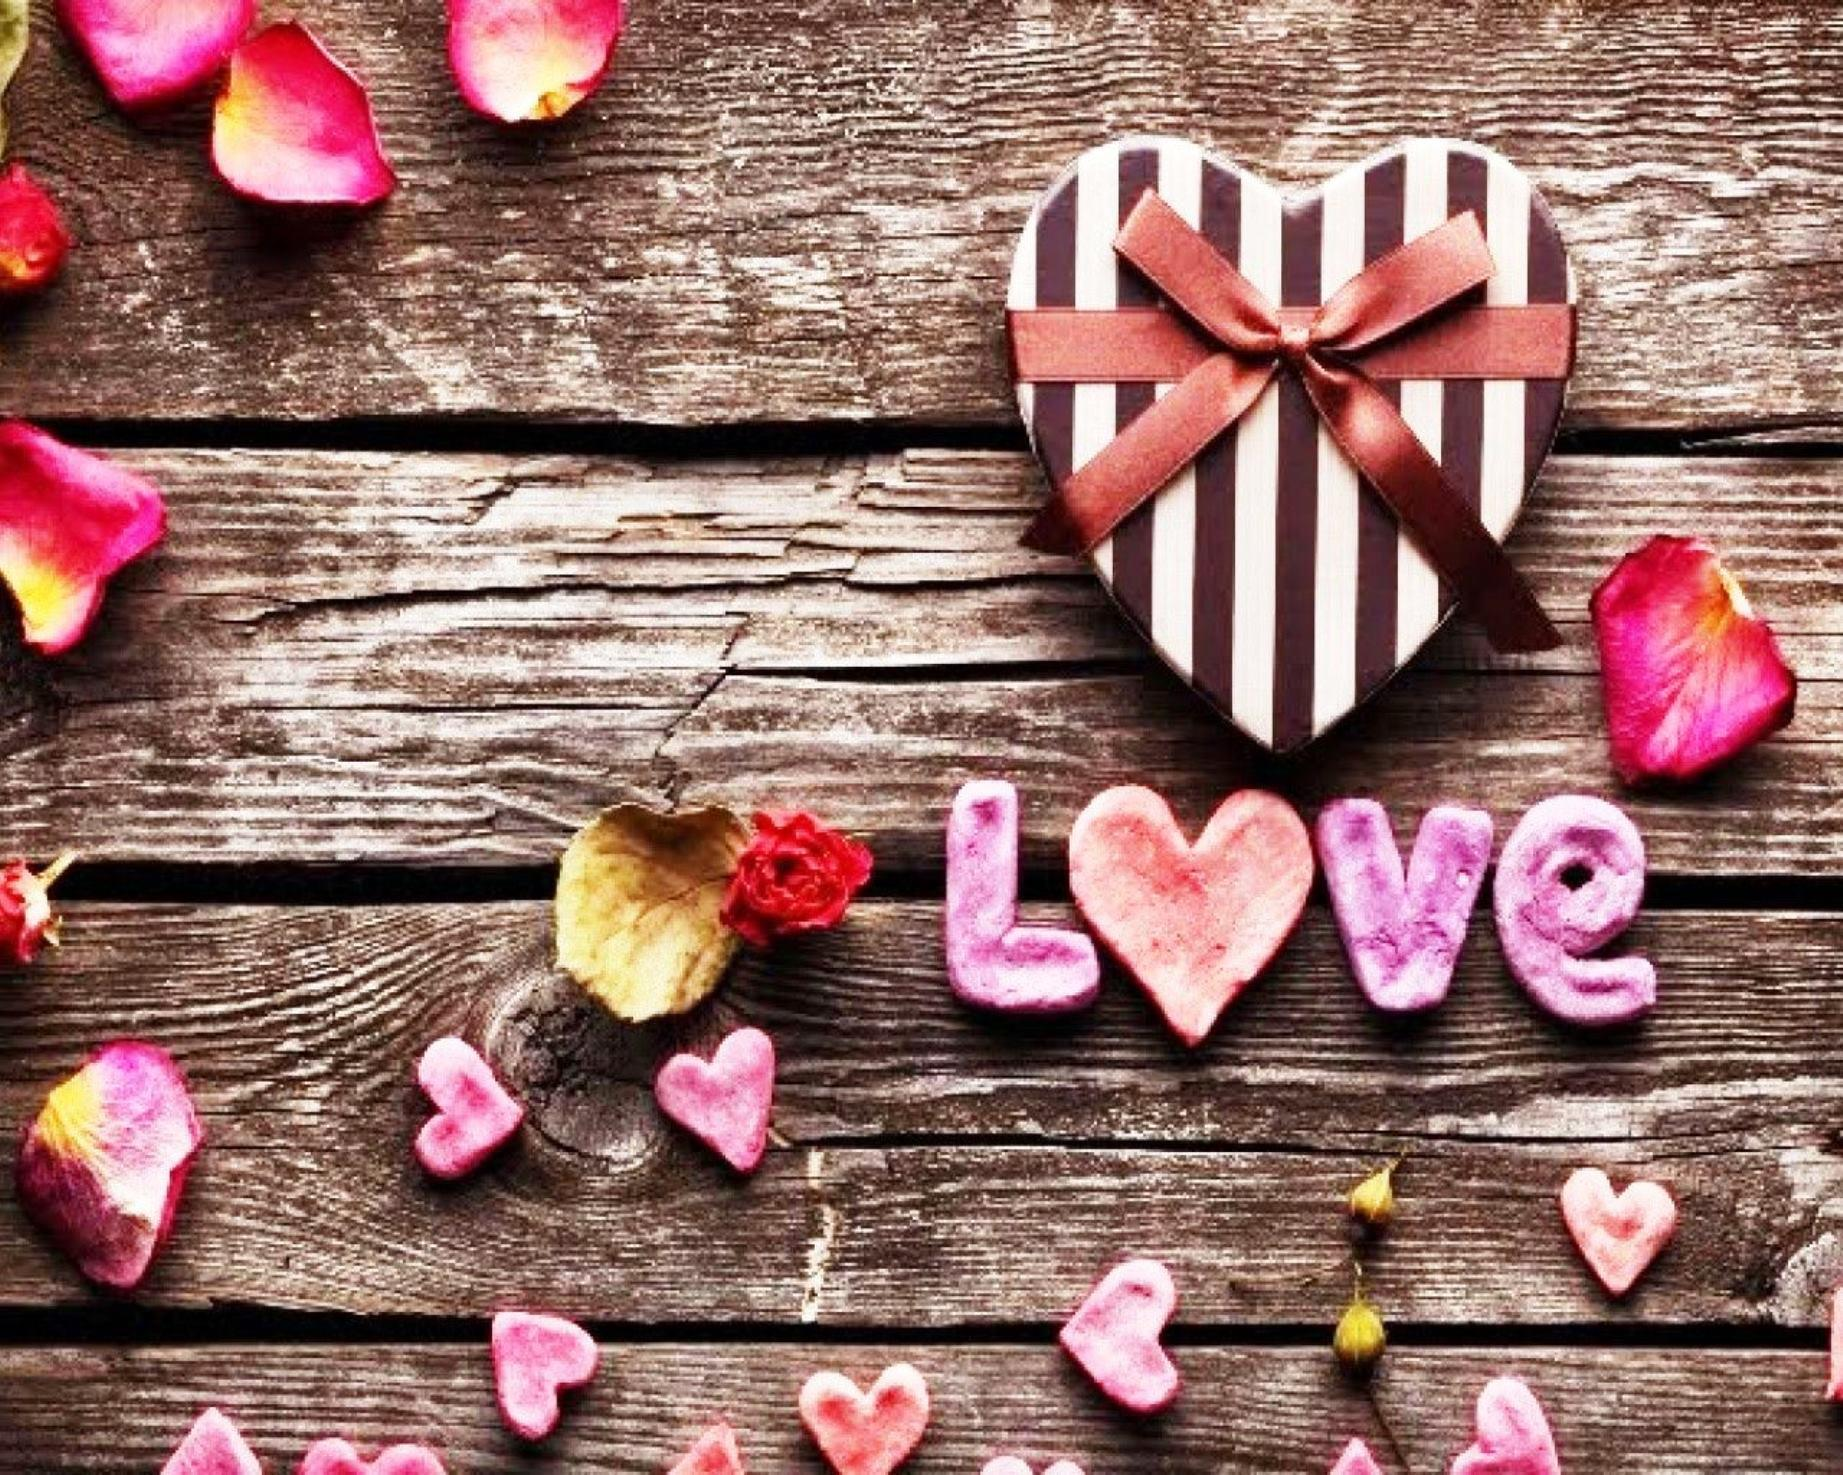 Hd Cute Love Wallpapers For Mobile Wallpaper Cave